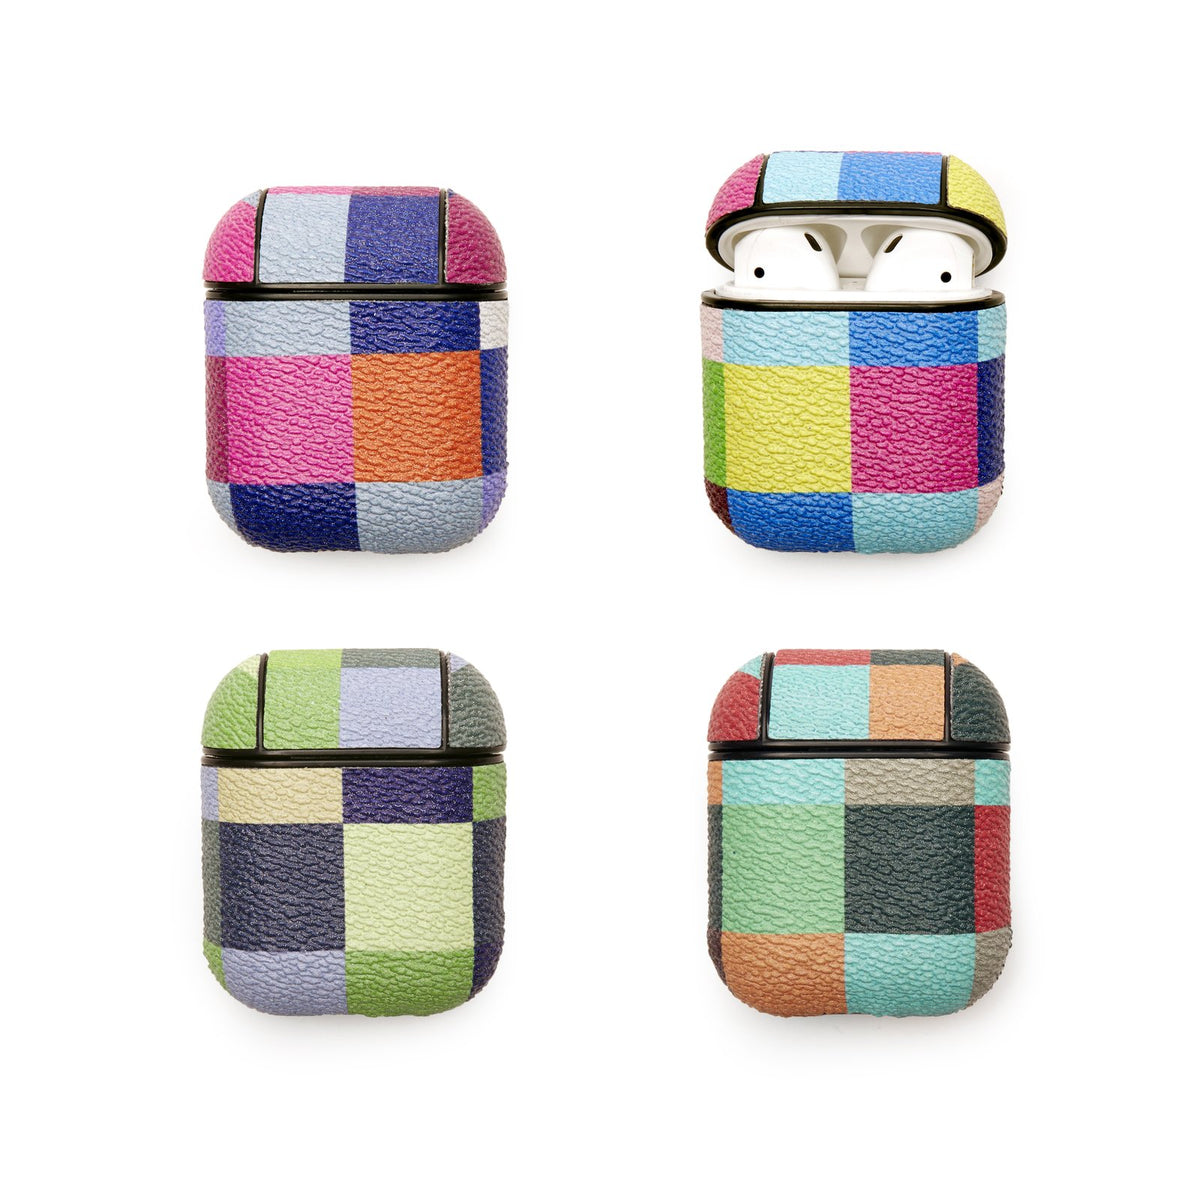 Plaid Earbud Case (assorted designs)